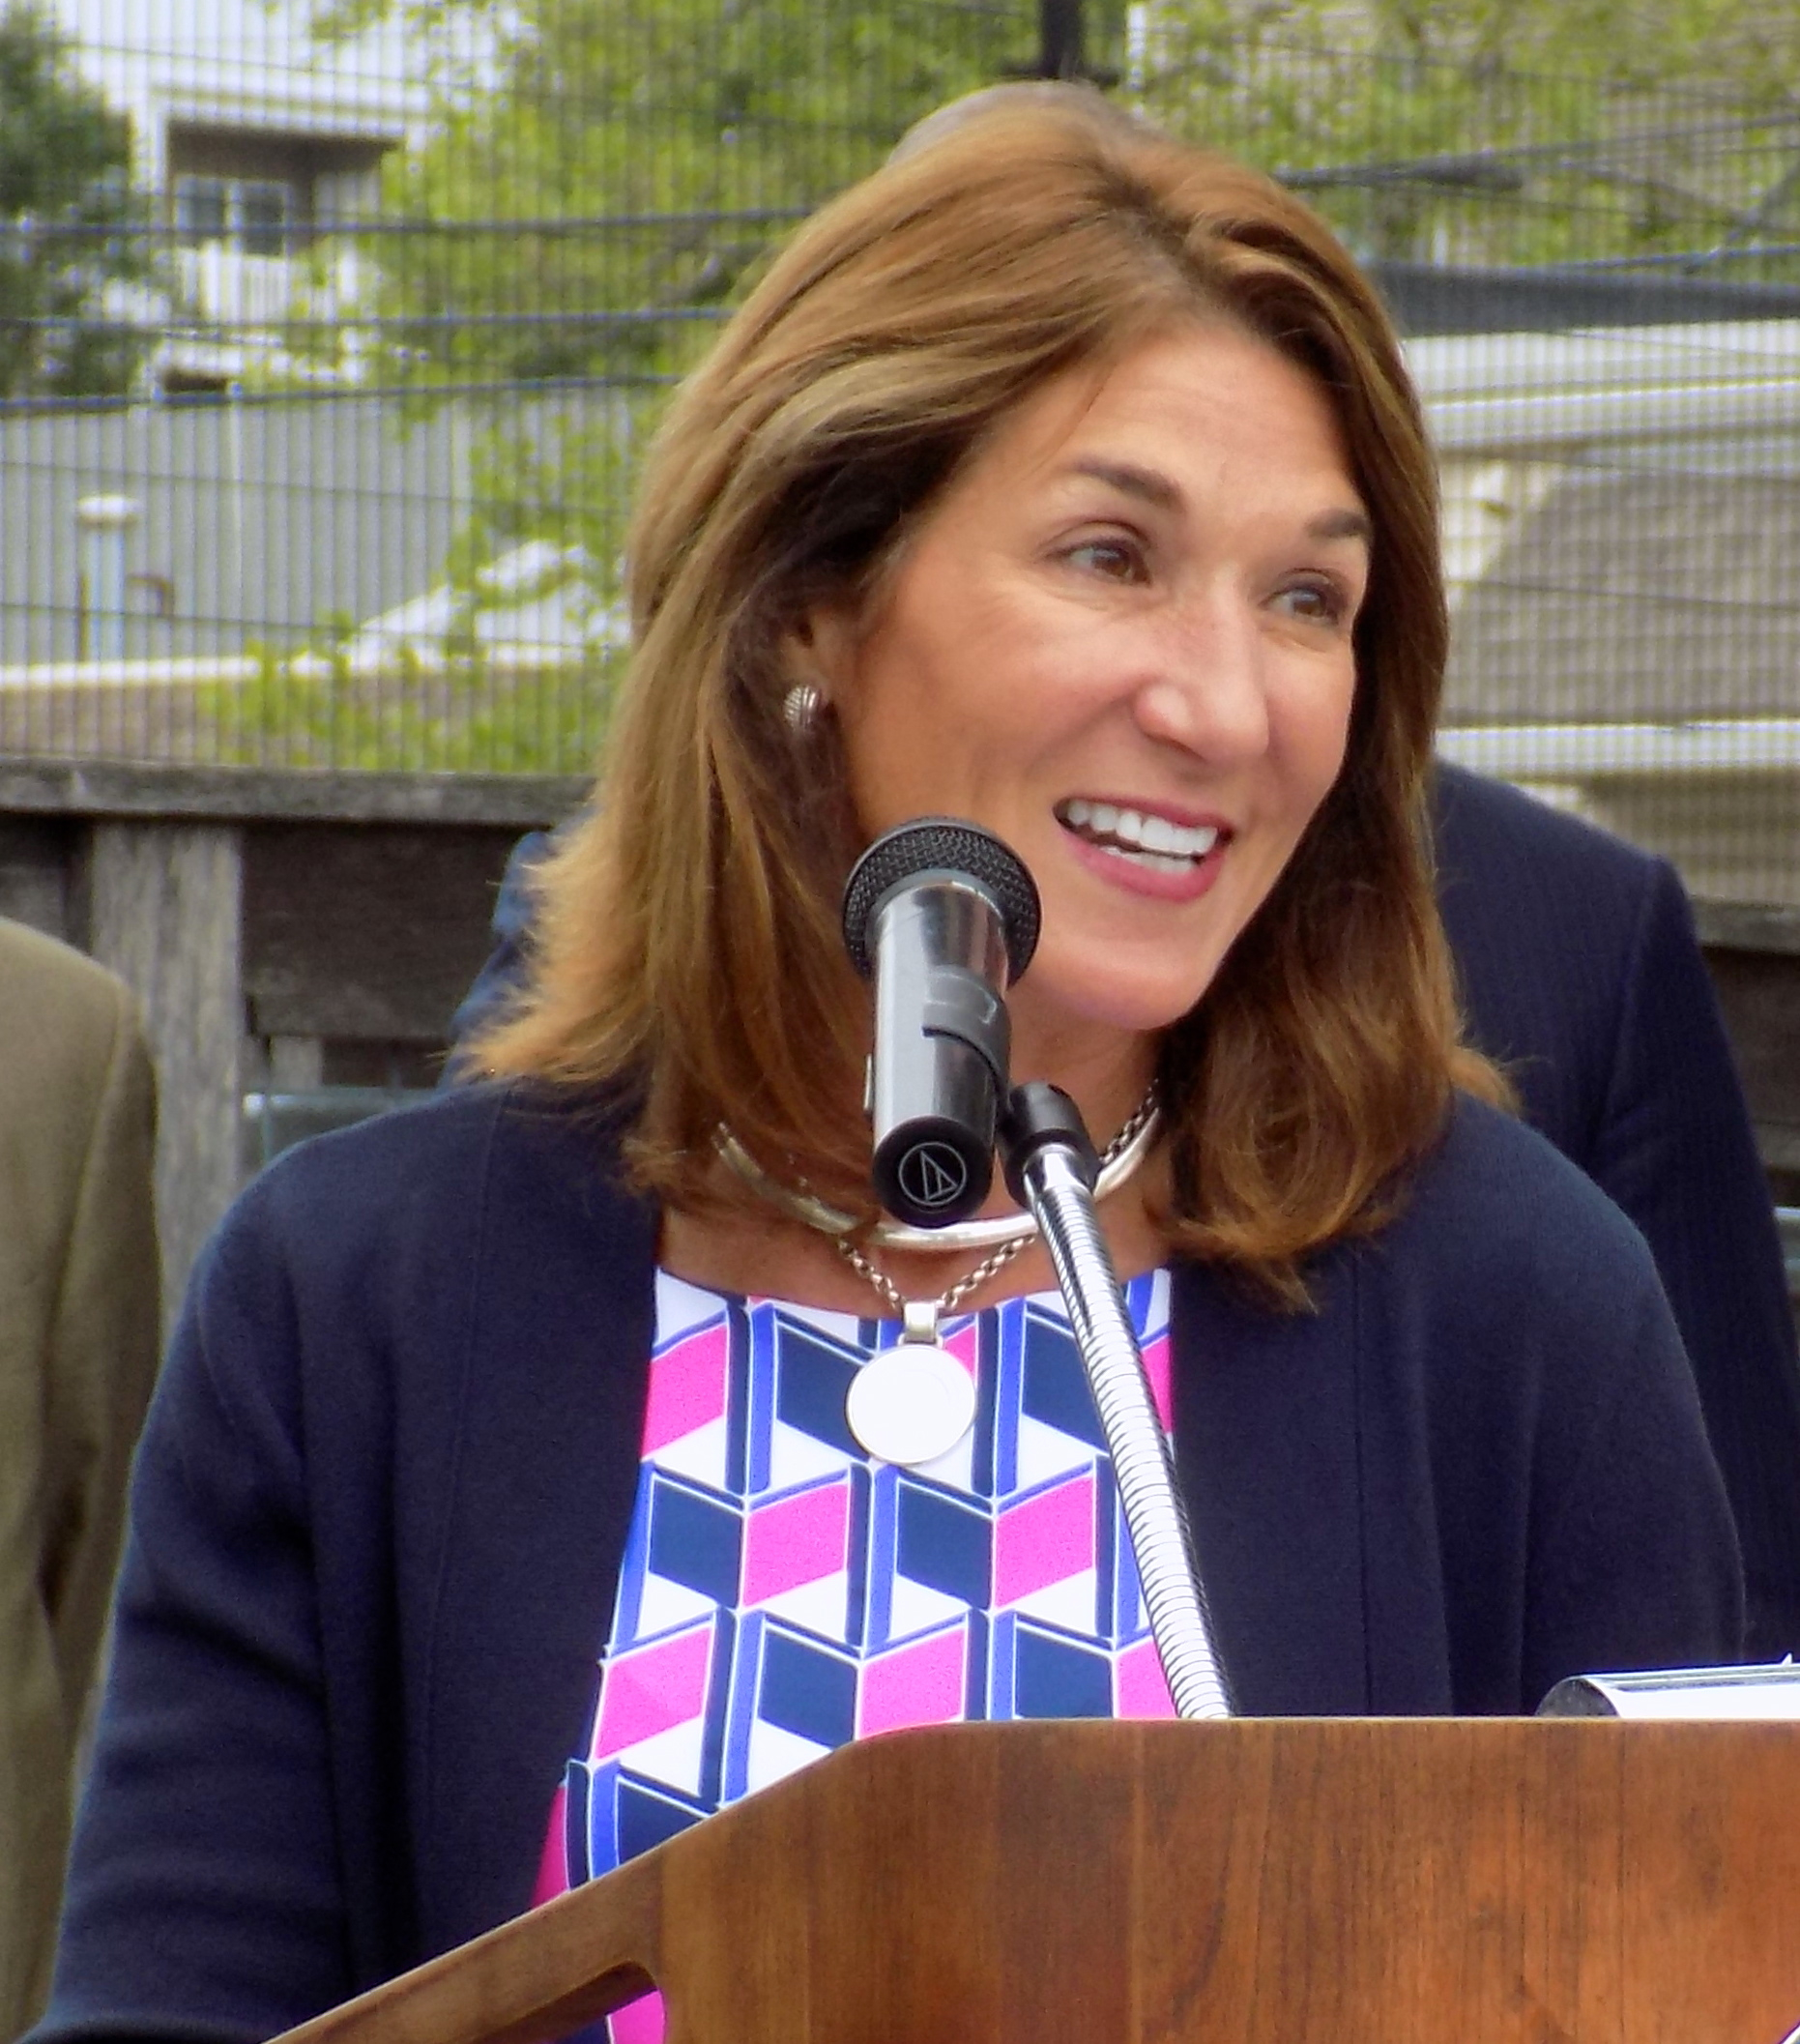 Lt. Gov. Karyn Polito was on hand to help present two state grants to the city totaling $467,616 for Municipal Vulnerability Preparedness at East End Peabody Veterans Memorial Park on June 1.